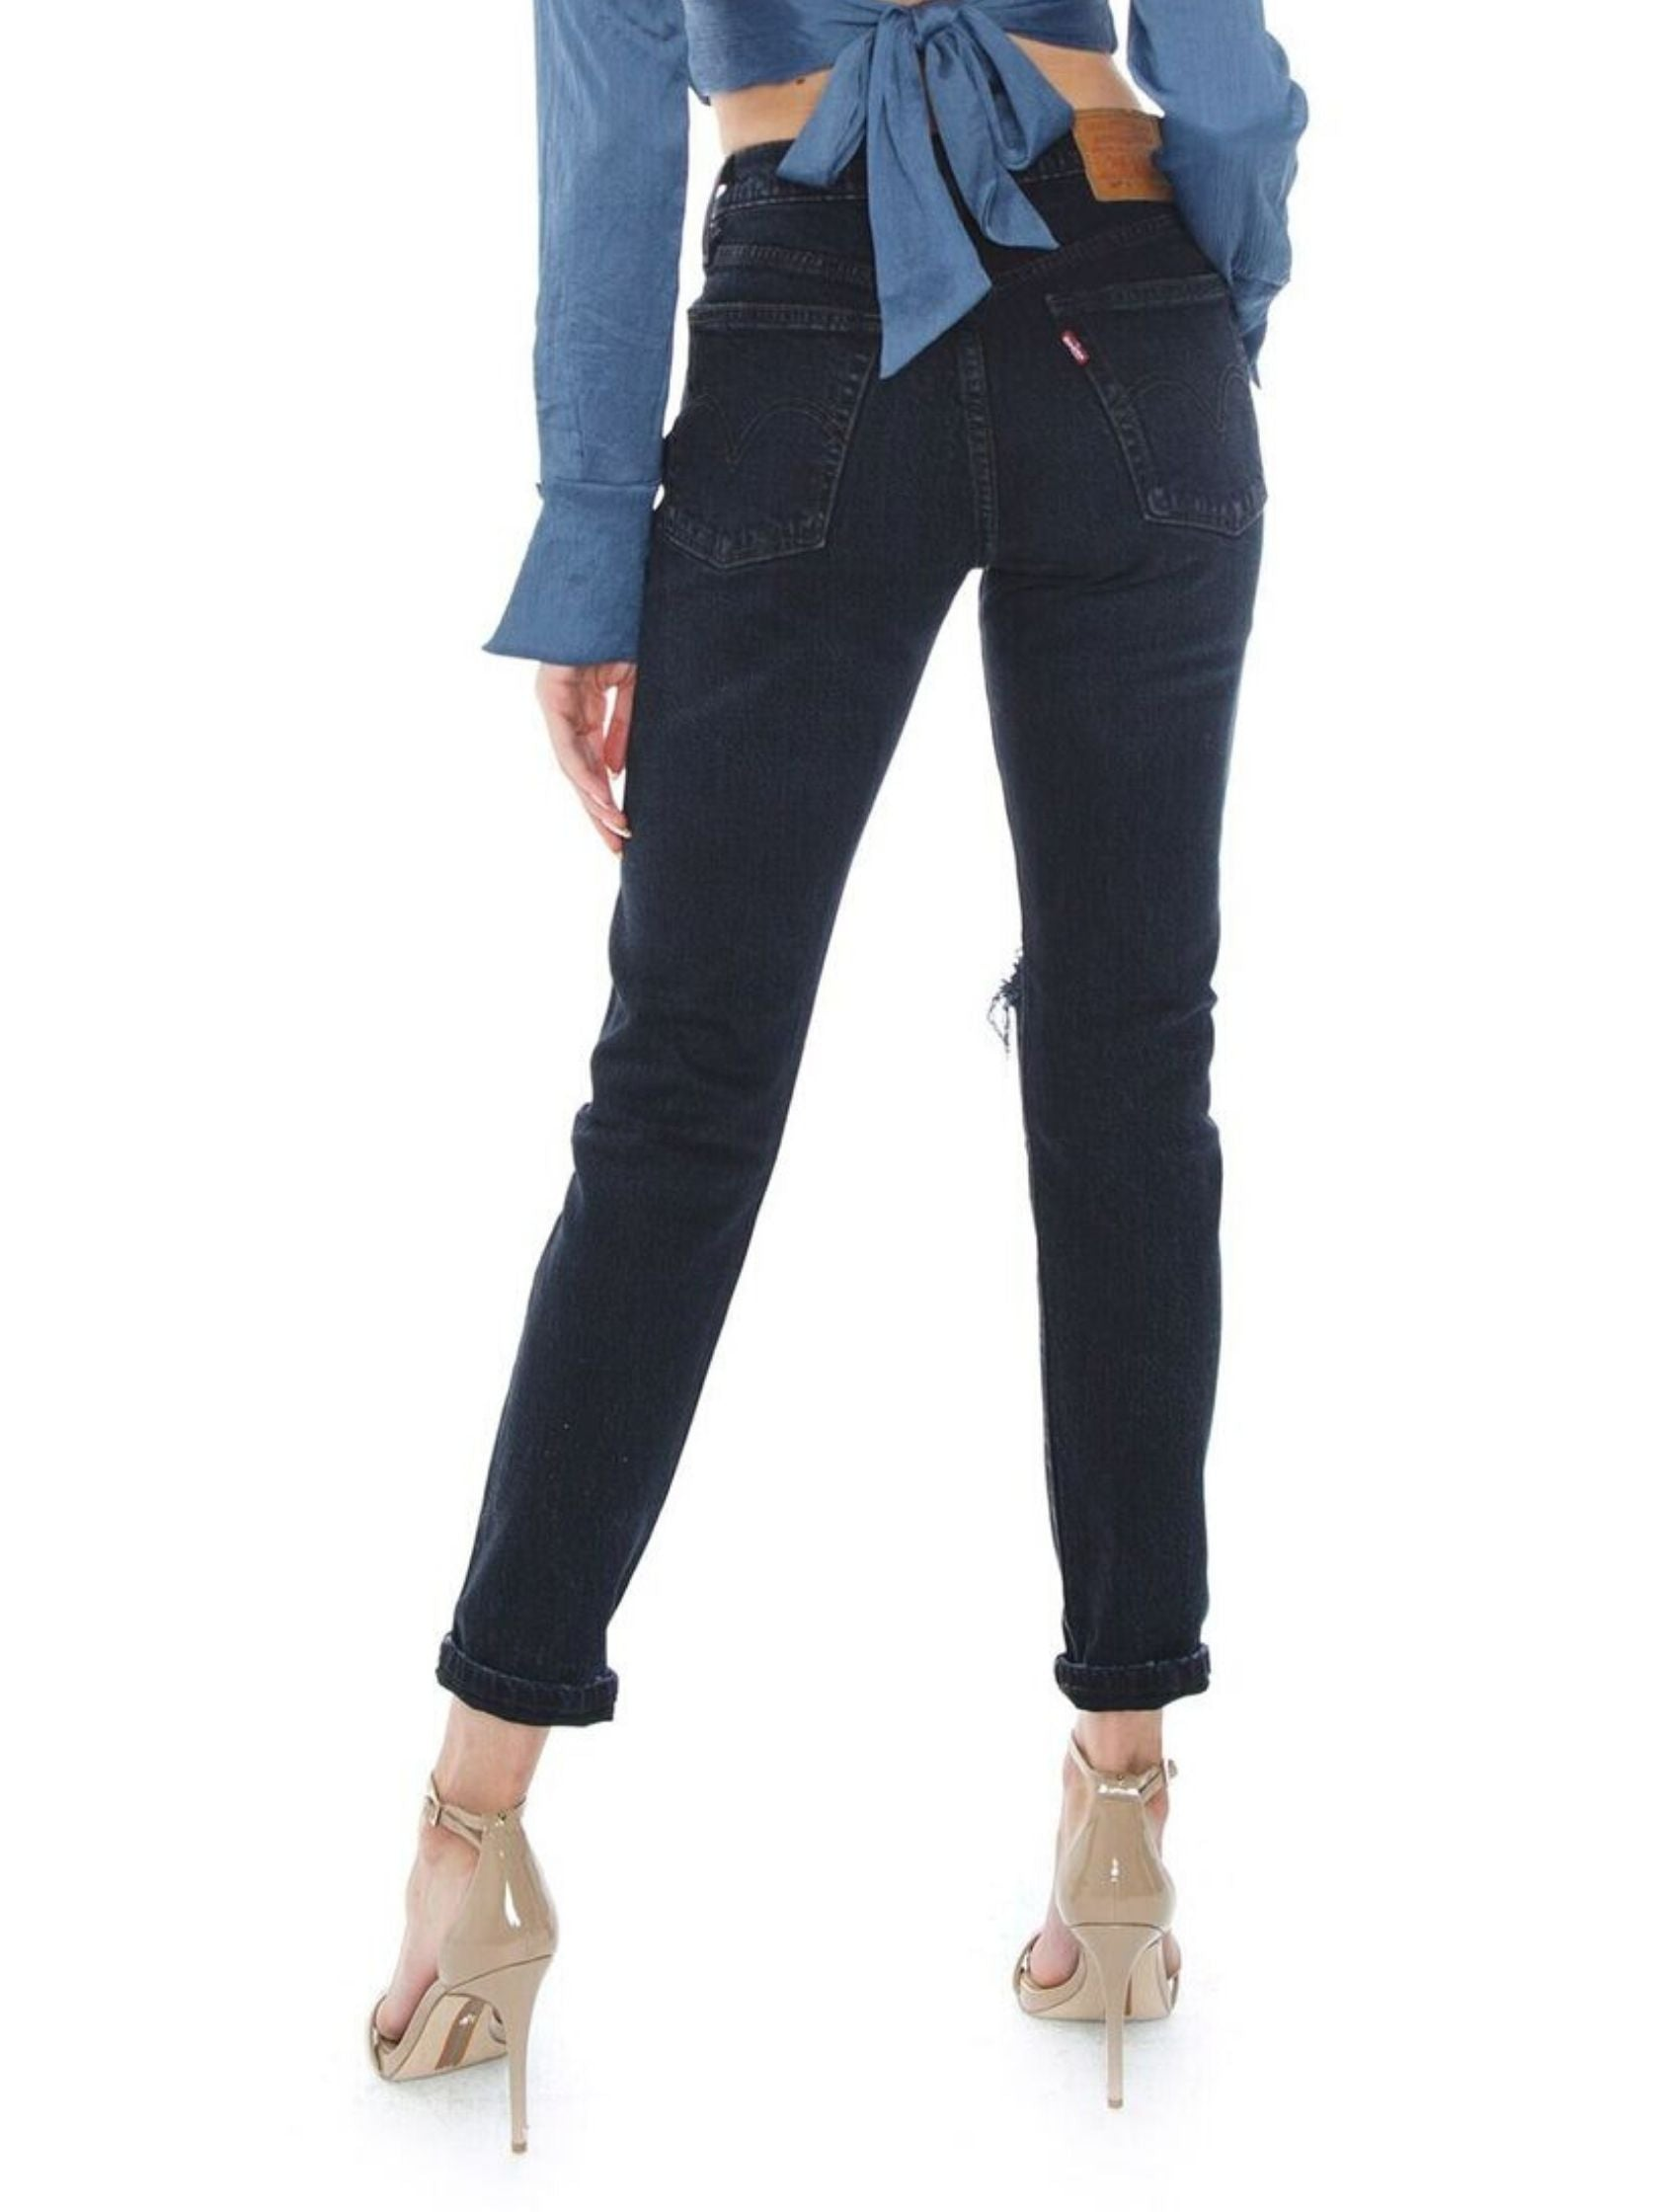 Women outfit in a denim rental from Levis called 501 Skinny